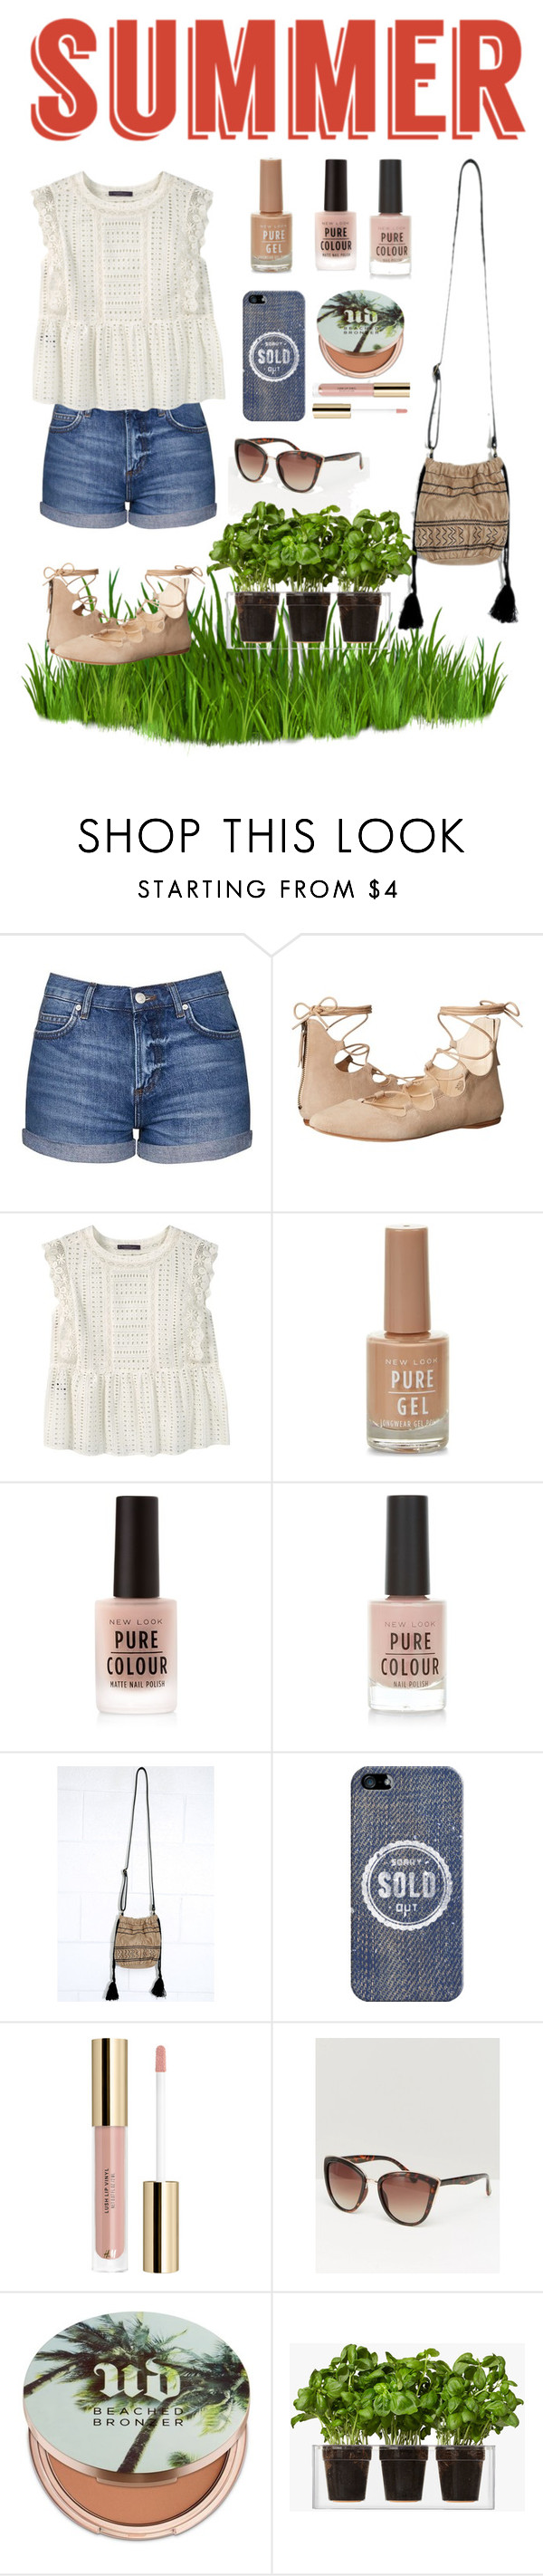 """Summer "" by daphnefontes ❤ liked on Polyvore featuring Topshop, Nine West, Violeta by Mango, New Look, Lulu*s, Casetify, MANGO, Urban Decay, Boskke and strawbags"